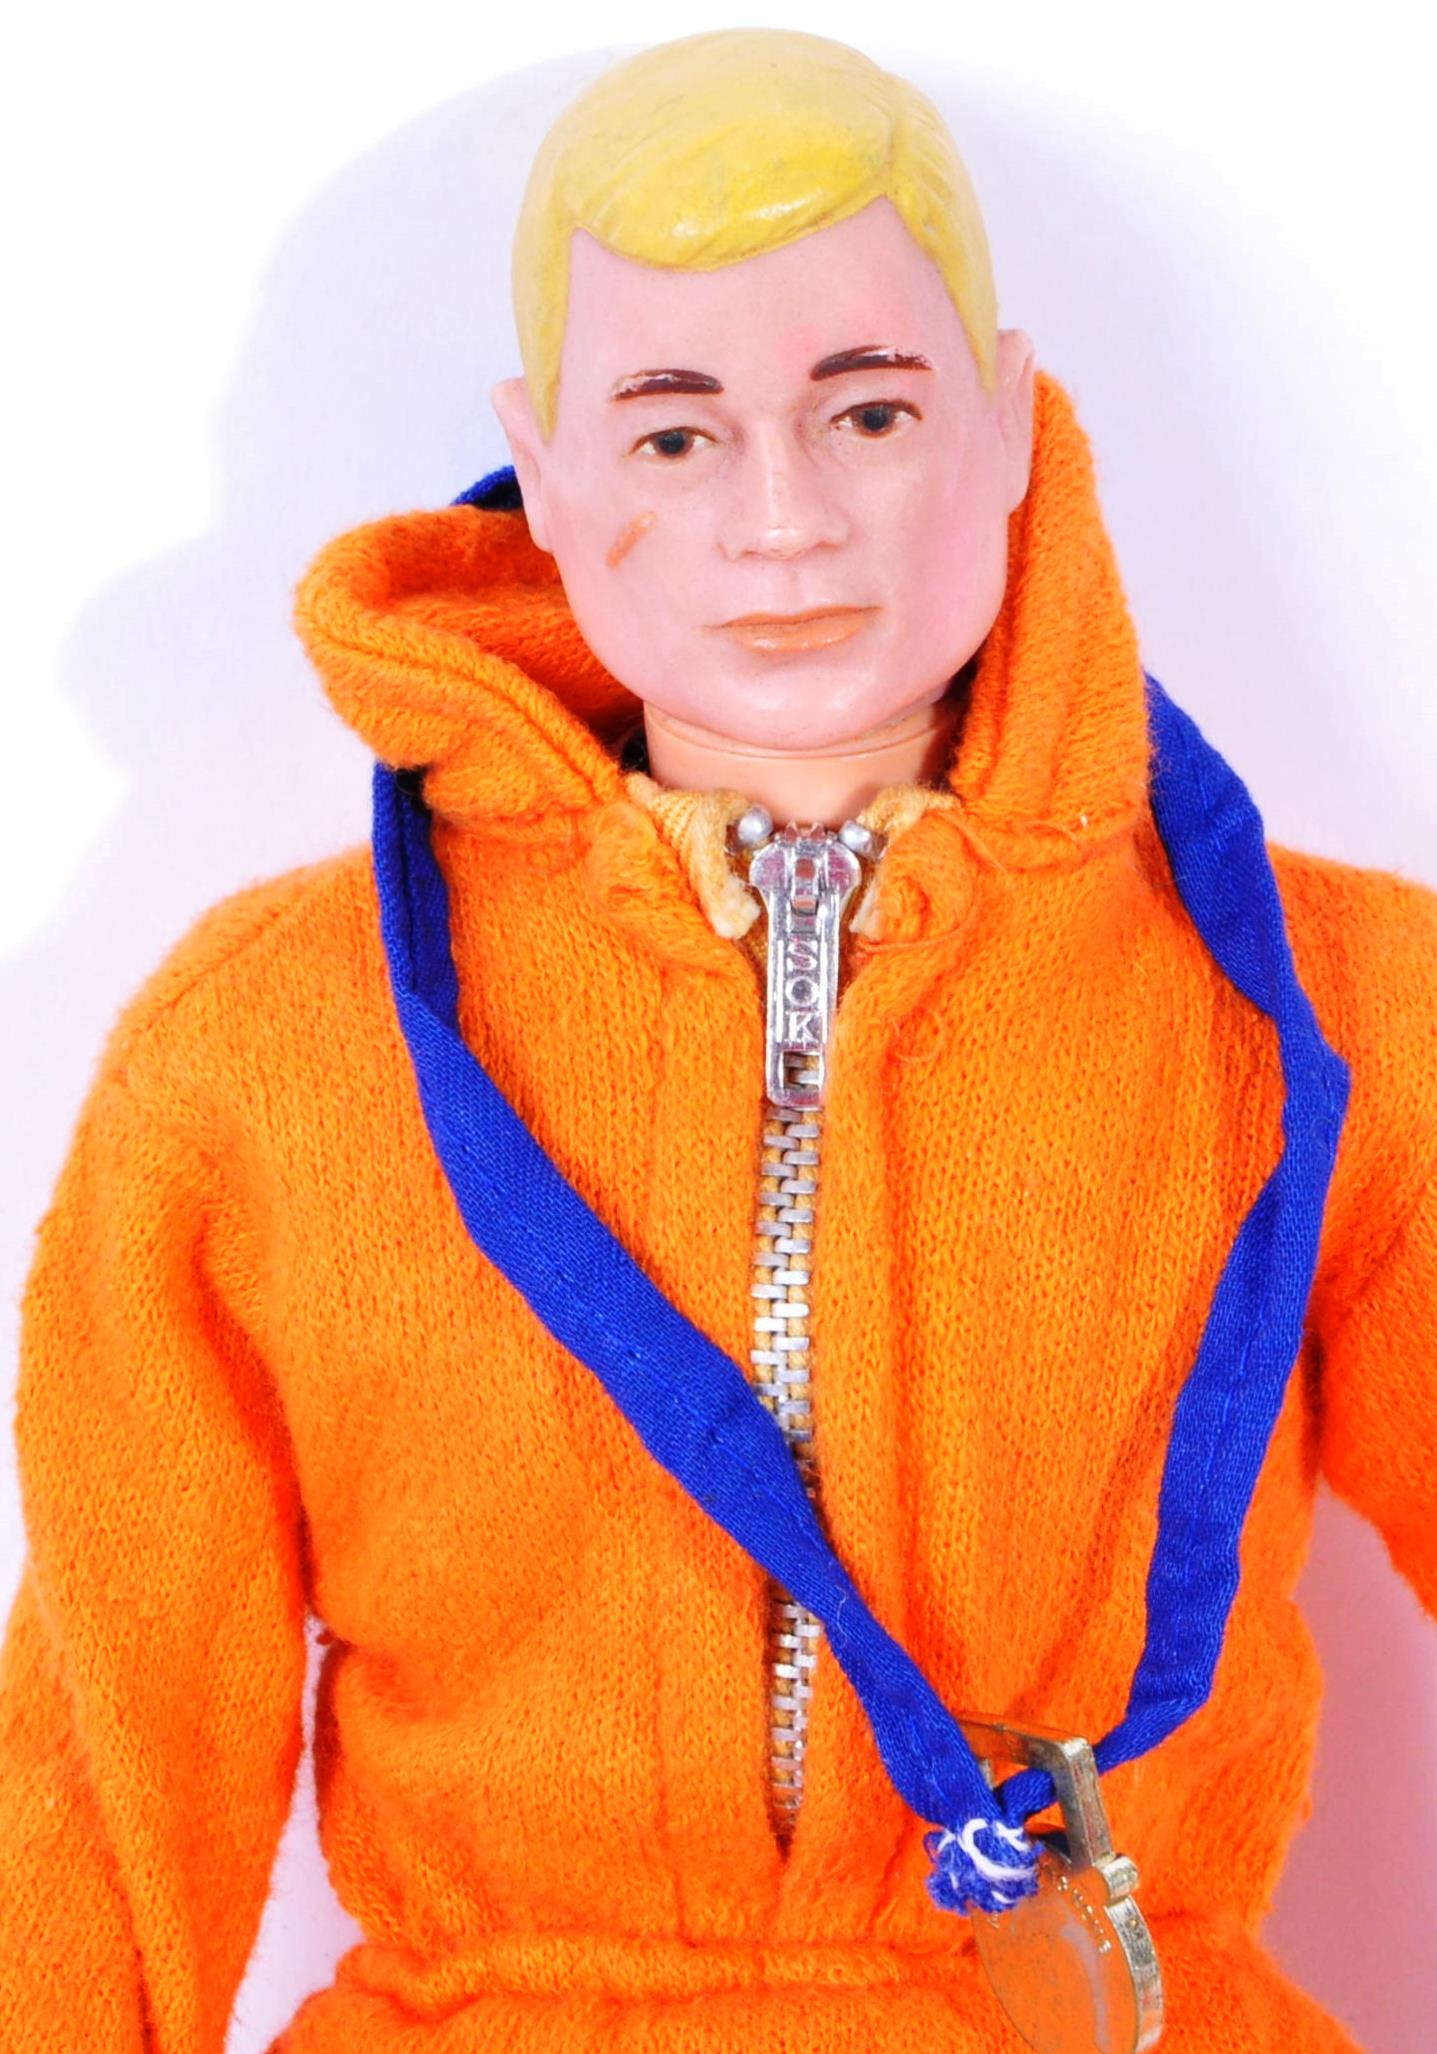 ACTION MAN - COLLECTION OF VINTAGE PALITOY UNIFORMS & FIGURE - Image 2 of 9